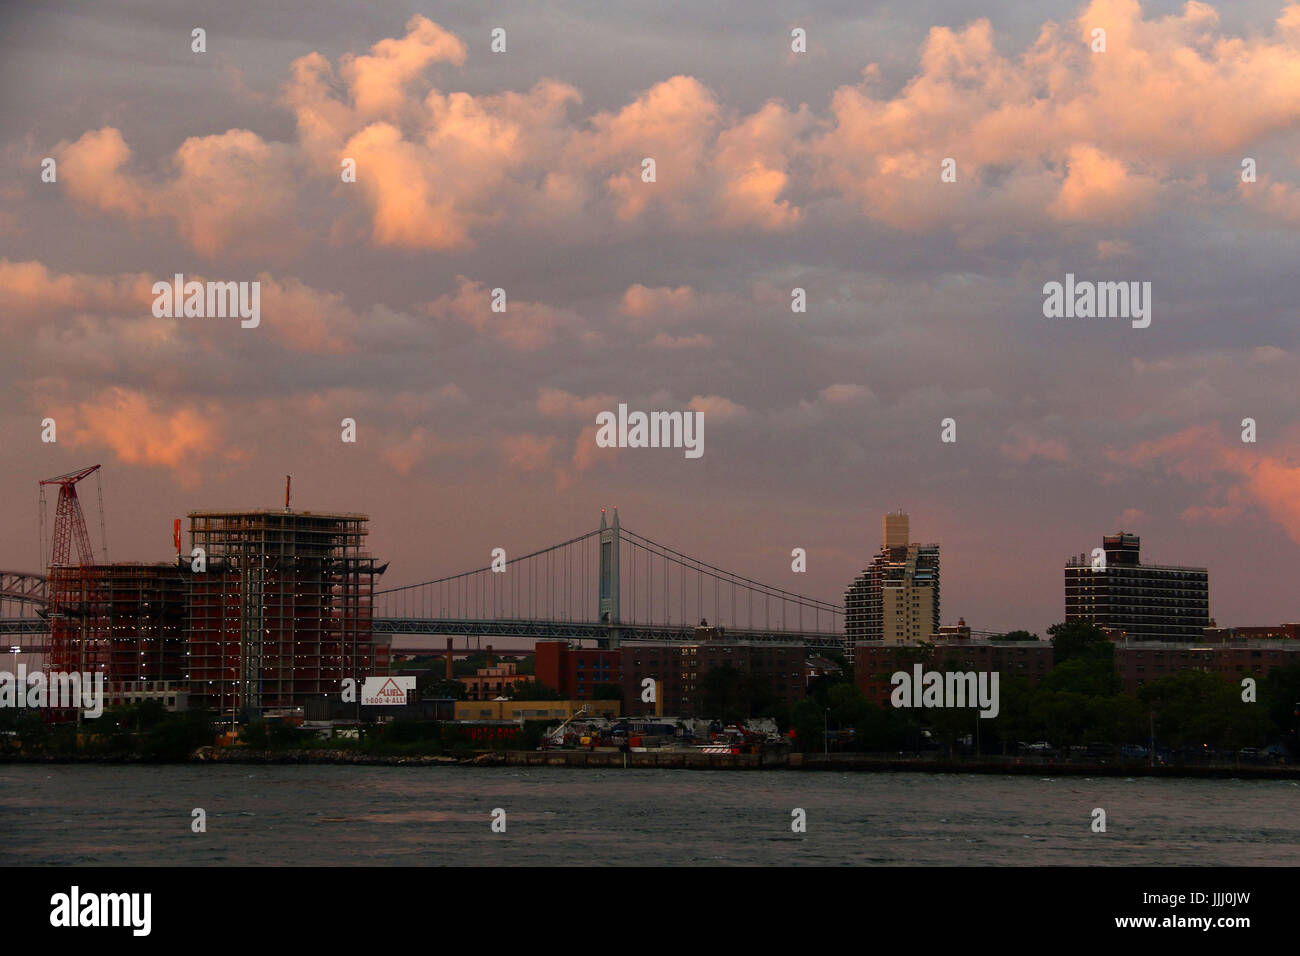 Twilight over Triborough Bridge and East River with clouds - Stock Image